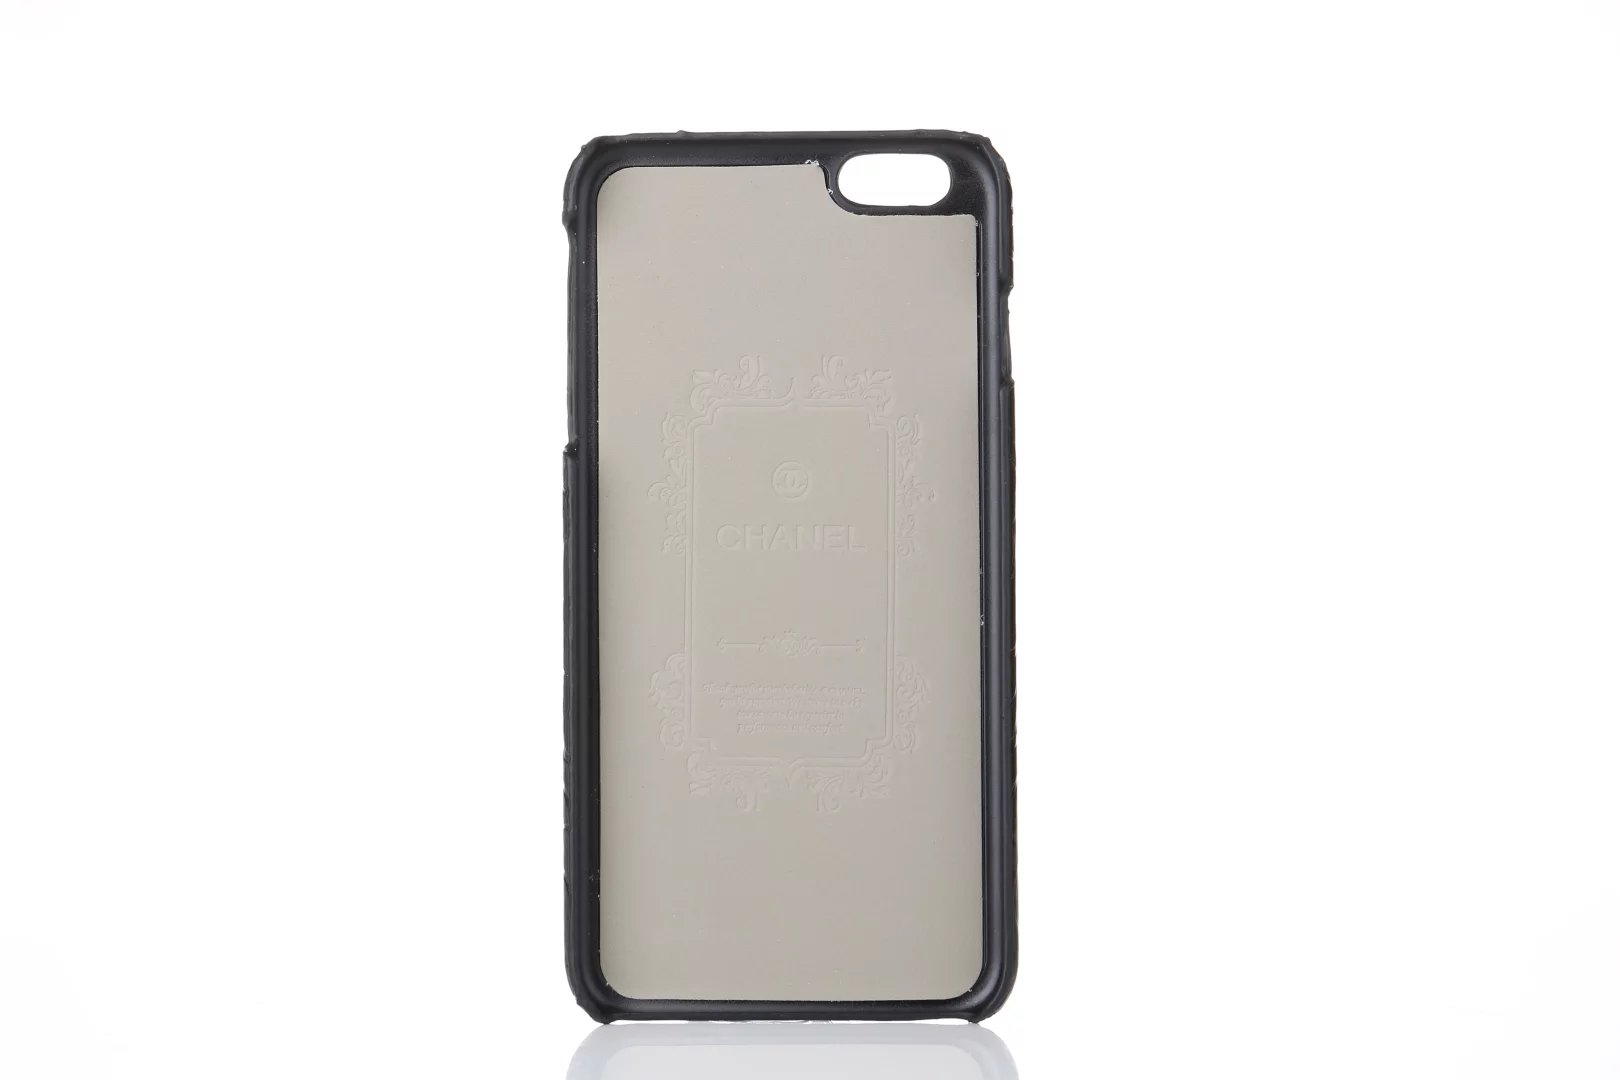 designer iphone 7 cases and covers protective case for iphone 7 fashion iphone7 case design your own cell phone case make your own iphone 7 case personalized iphone 7 case iphone 7 cases and accessories 7 cases iphone cheap iphone 7 cases